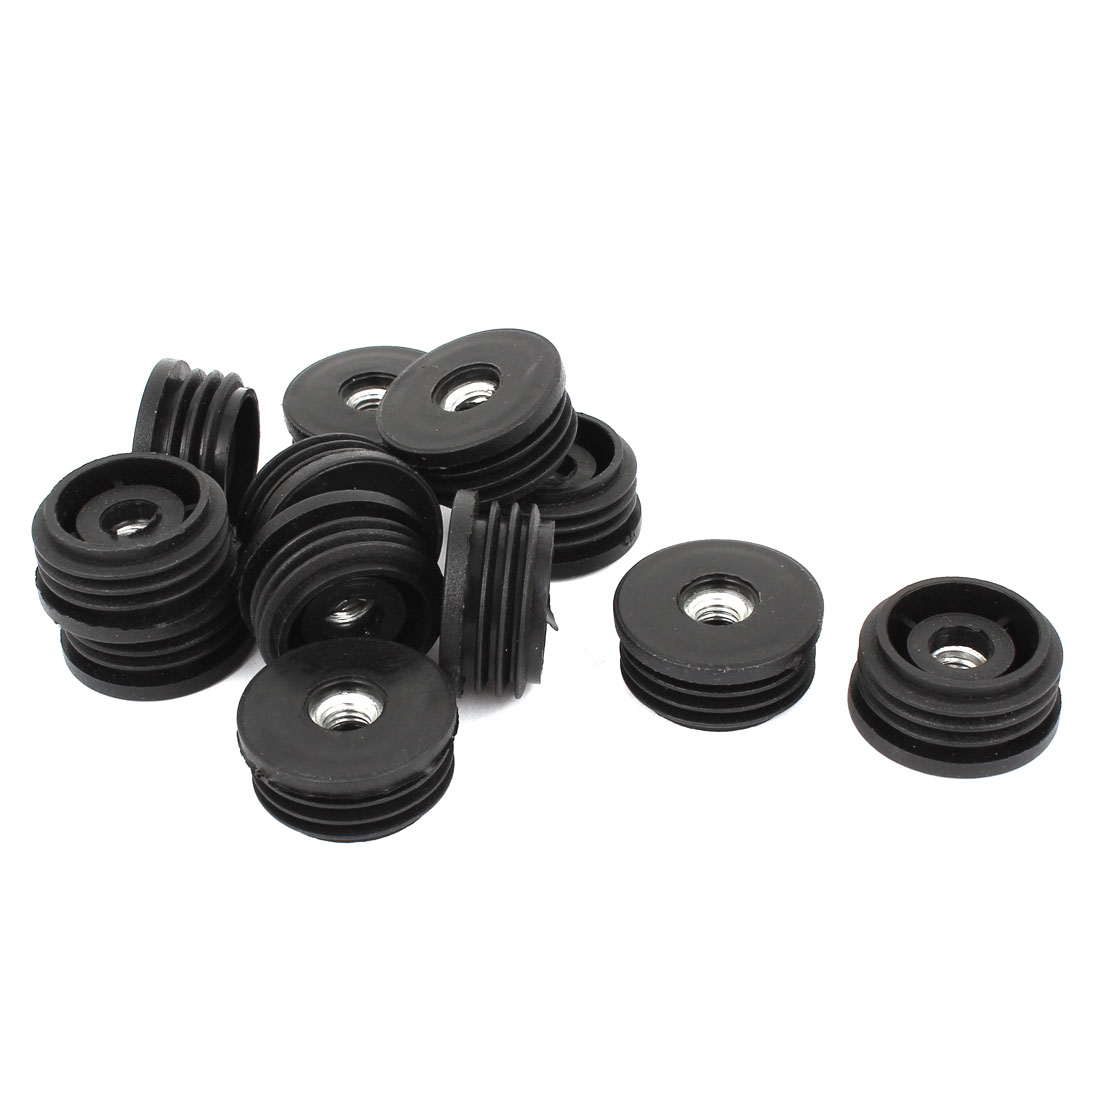 Furniture M8x32mm Screw Type Round Threaded Tube Insert Caps Covers 12 Pcs